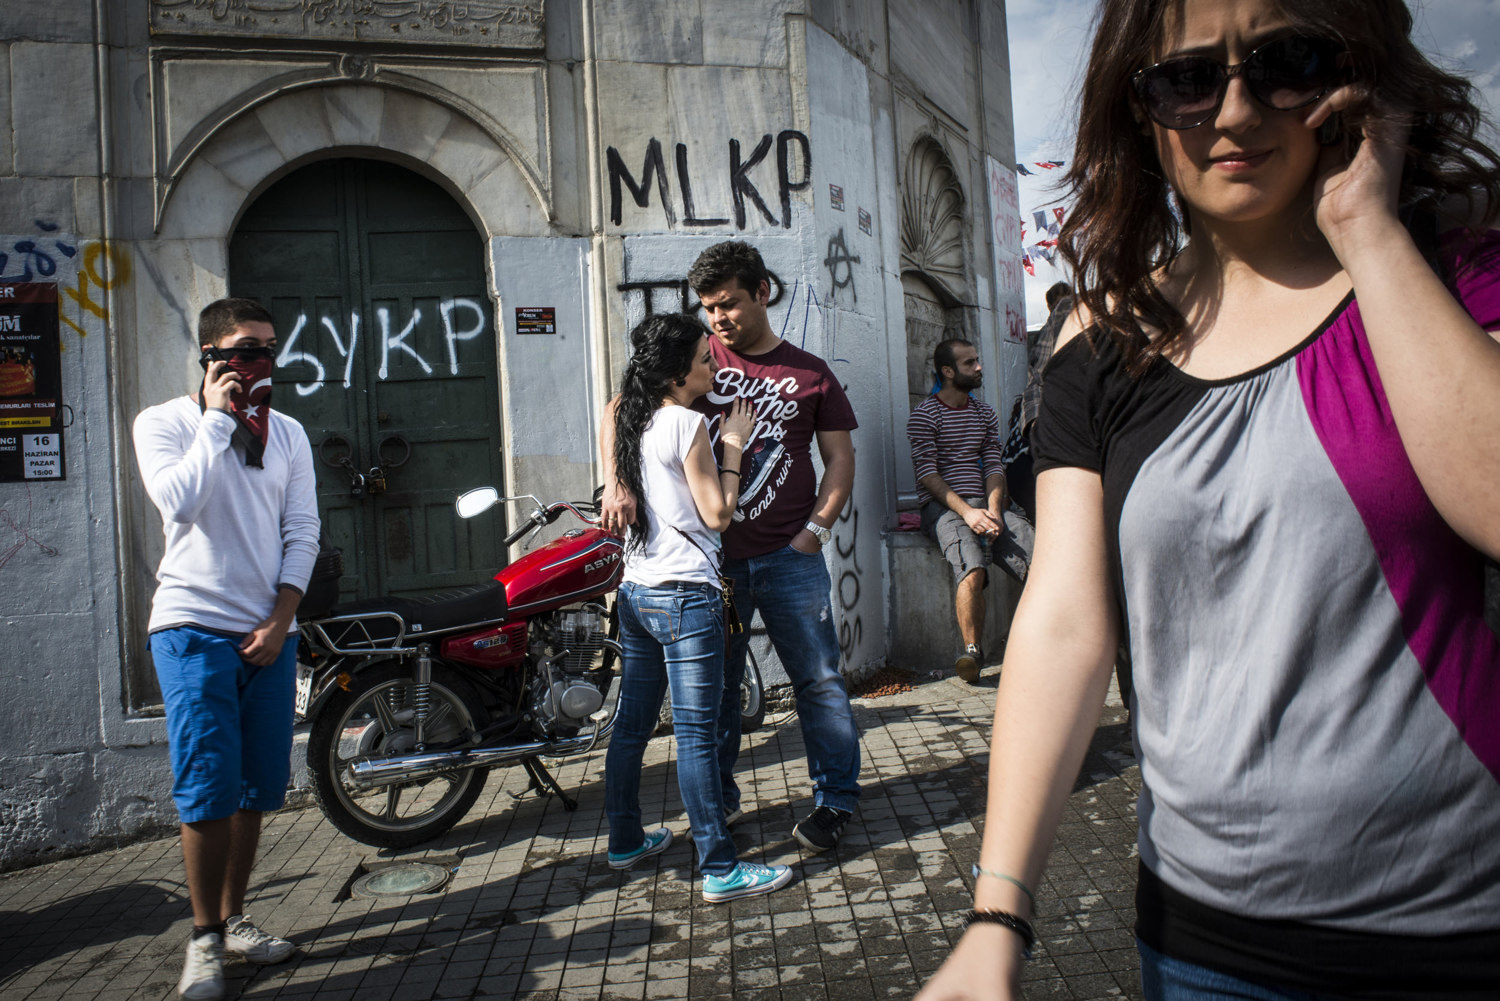 A couple in Taksim Square, where yesterdays violent clashes occurred. In Istanbul, Turkey June 2, 2013.